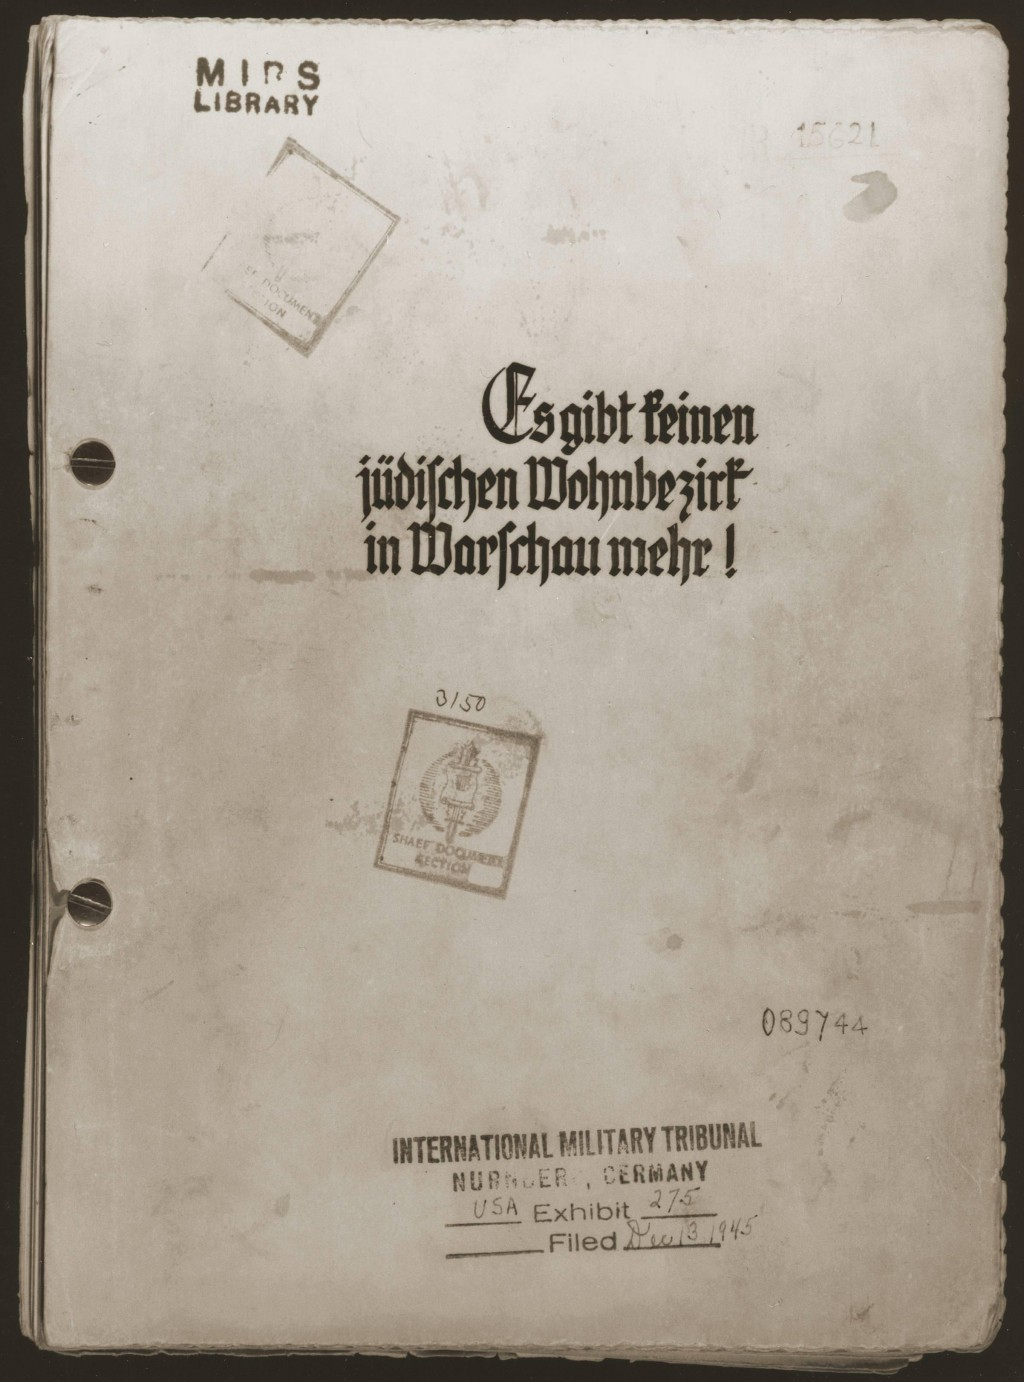 """<p>SS Major General Juergen Stroop, commander of German forces that suppressed the Warsaw ghetto uprising, compiled an album of photographs and other materials. This album, later known as """"The Stroop Report,"""" was introduced as evidence at the International Military Tribunal at Nuremberg. Here, its cover is marked with an IMT evidence stamp.</p>"""